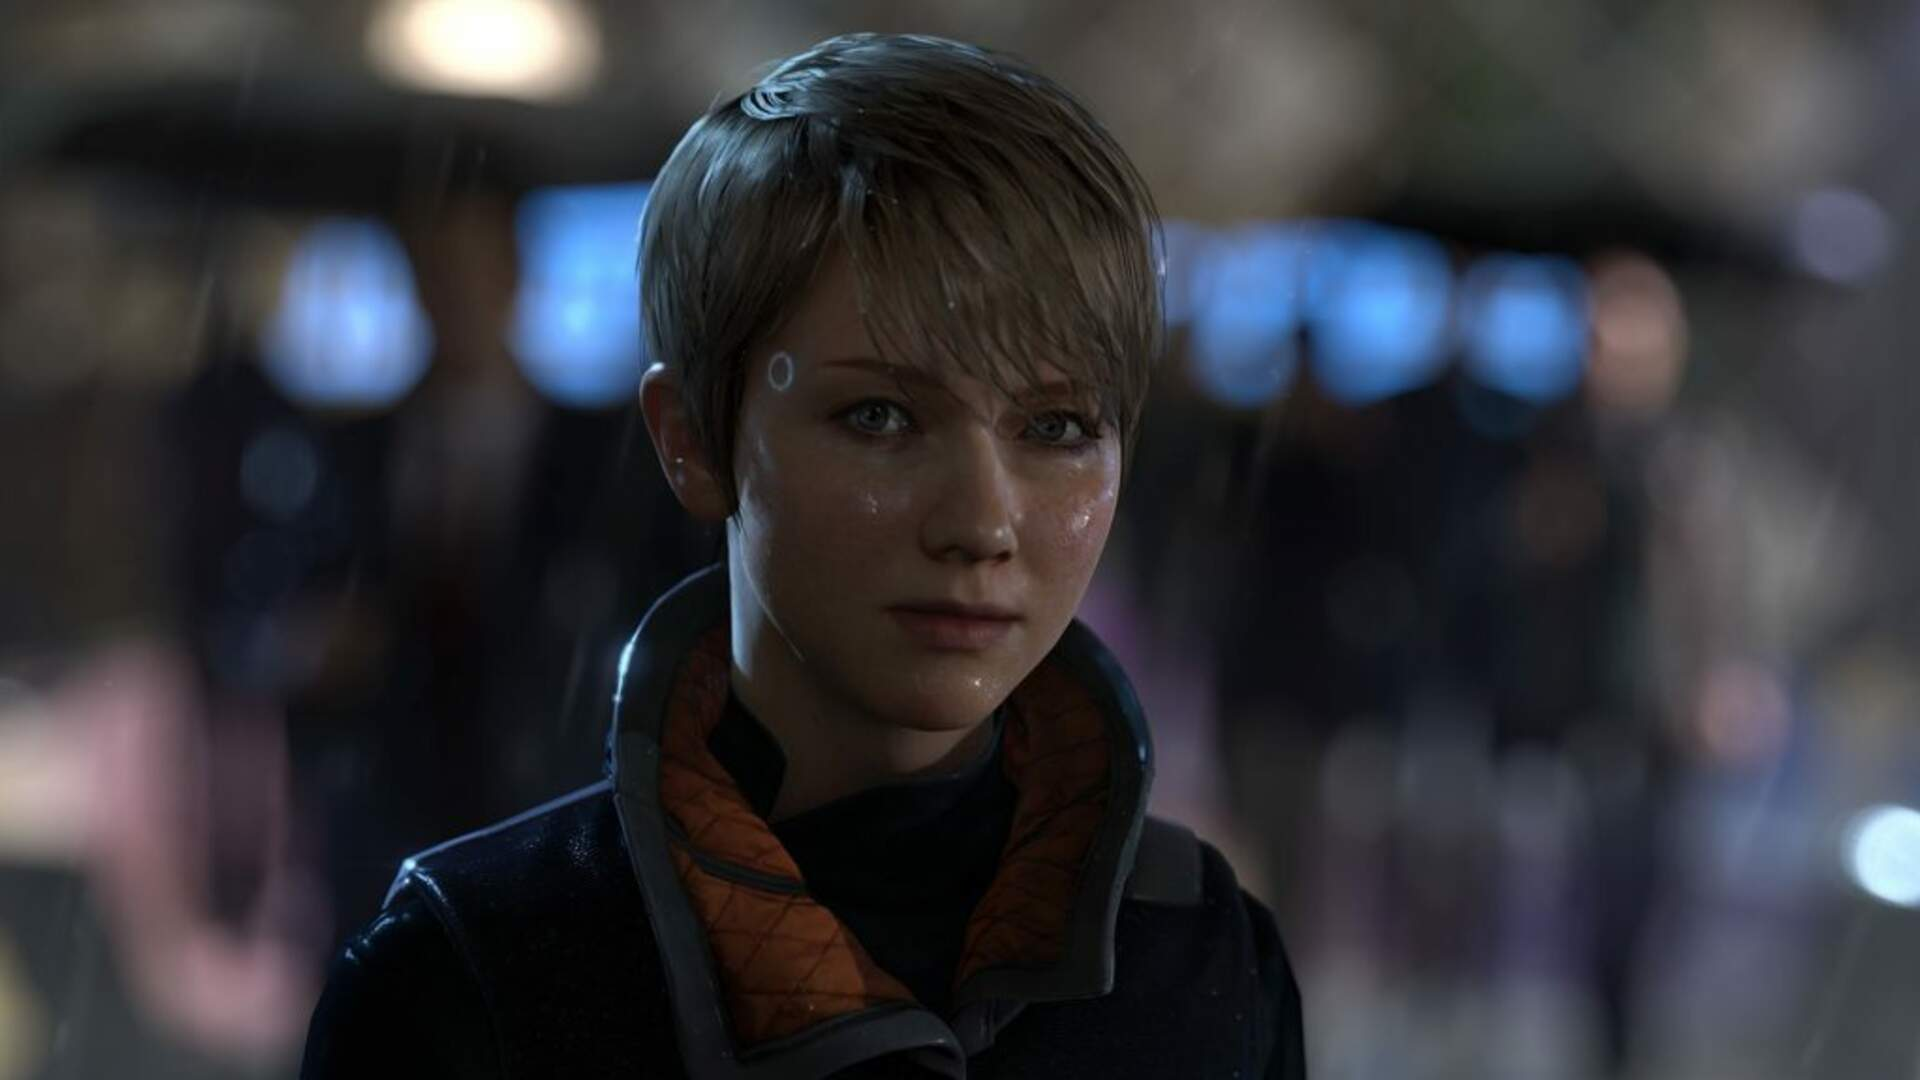 Detroit: Become Human Creator Quantic Dream Is Going Independent